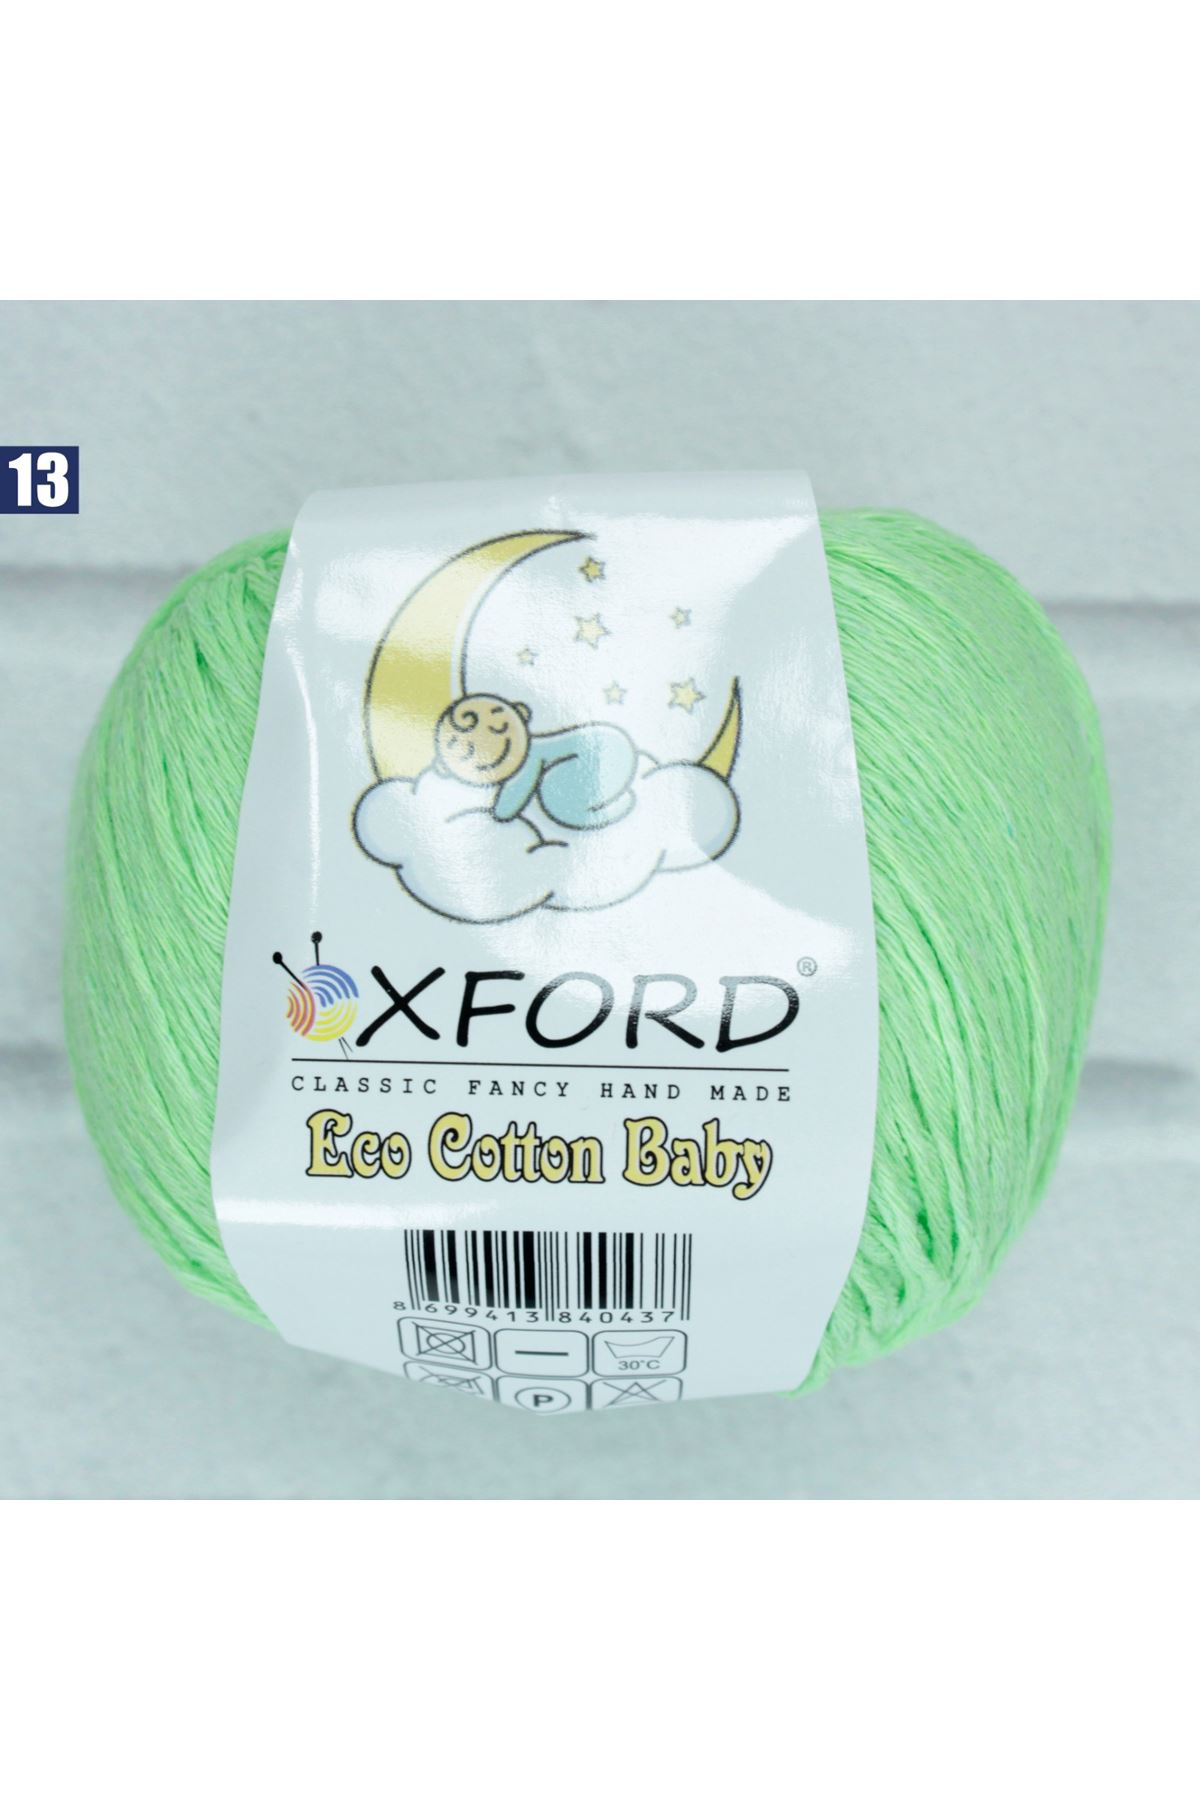 Oxford Eco Cotton Baby 13